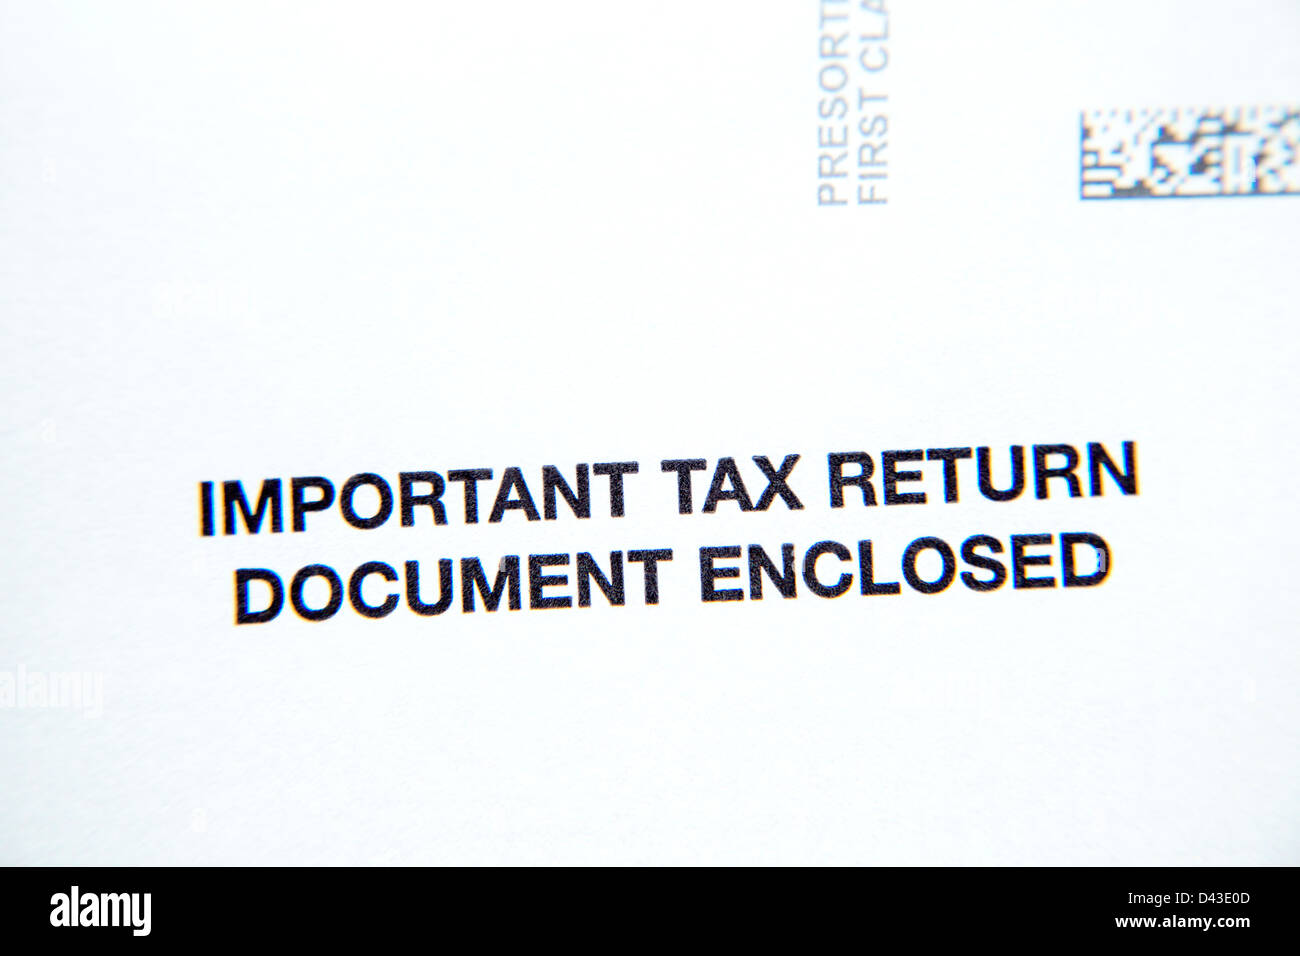 Tax document - Stock Image